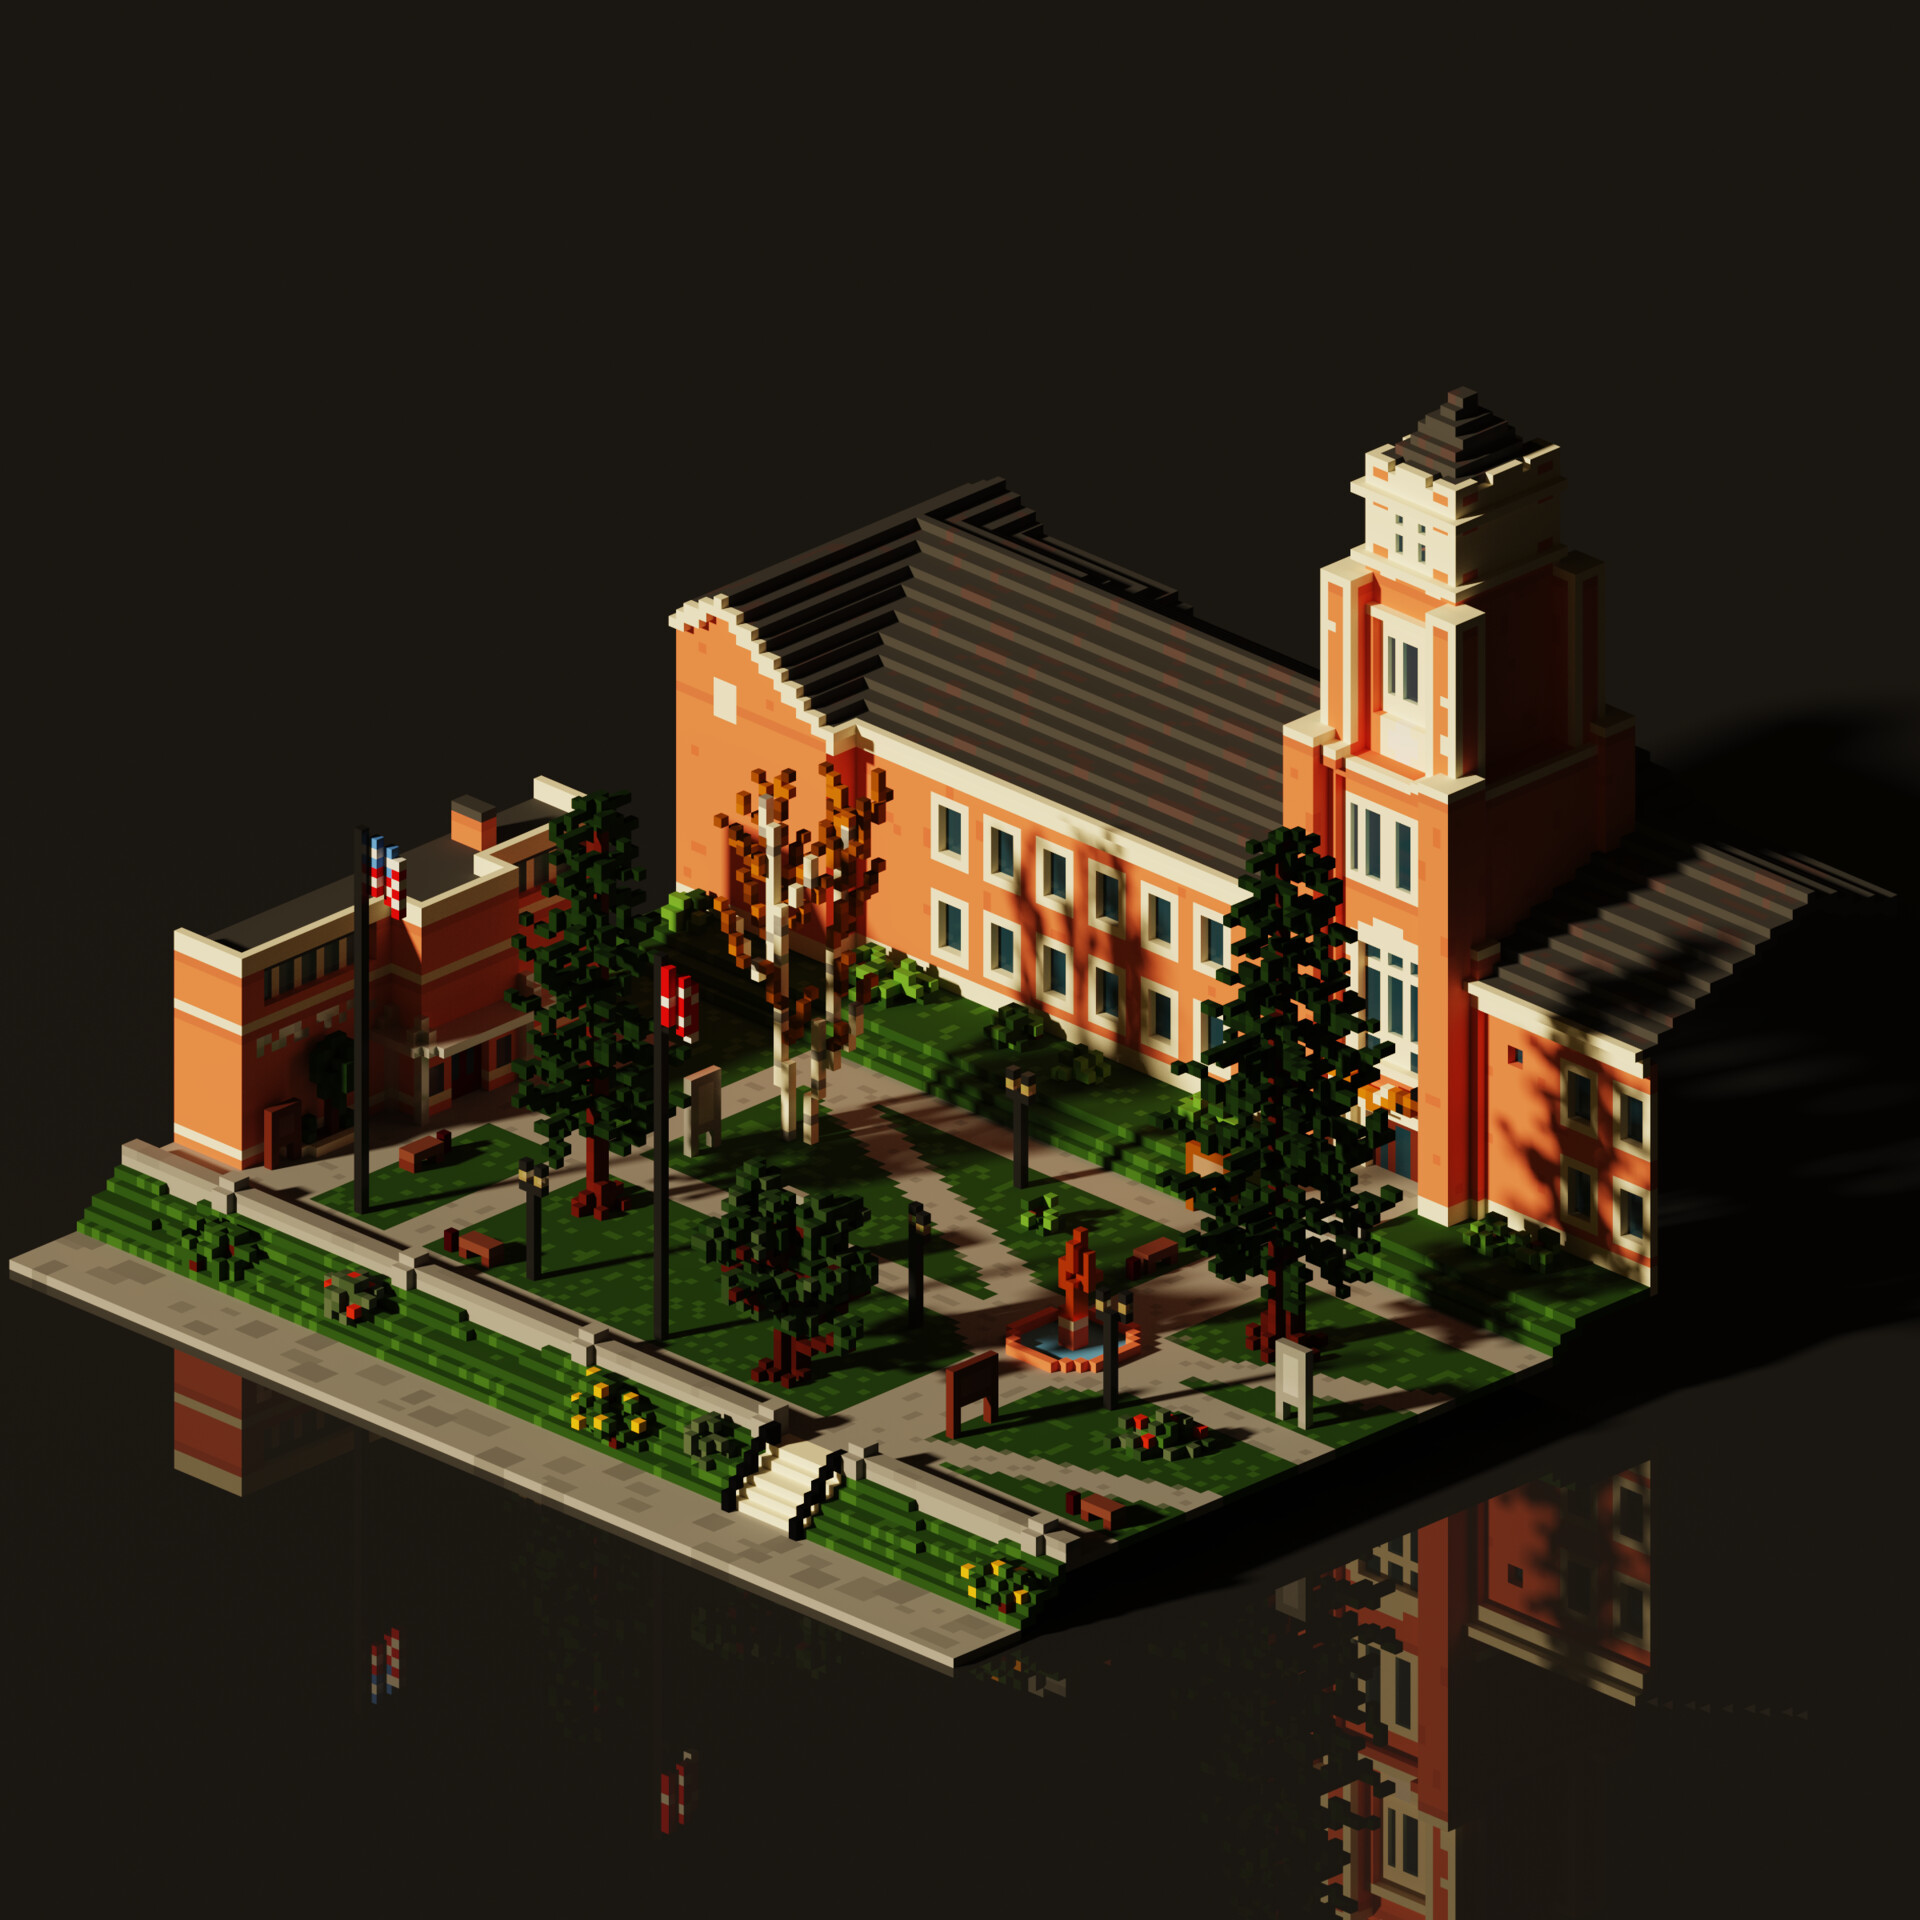 Late afternoon, Blackwell Academy MagicaVoxel render - May 2020